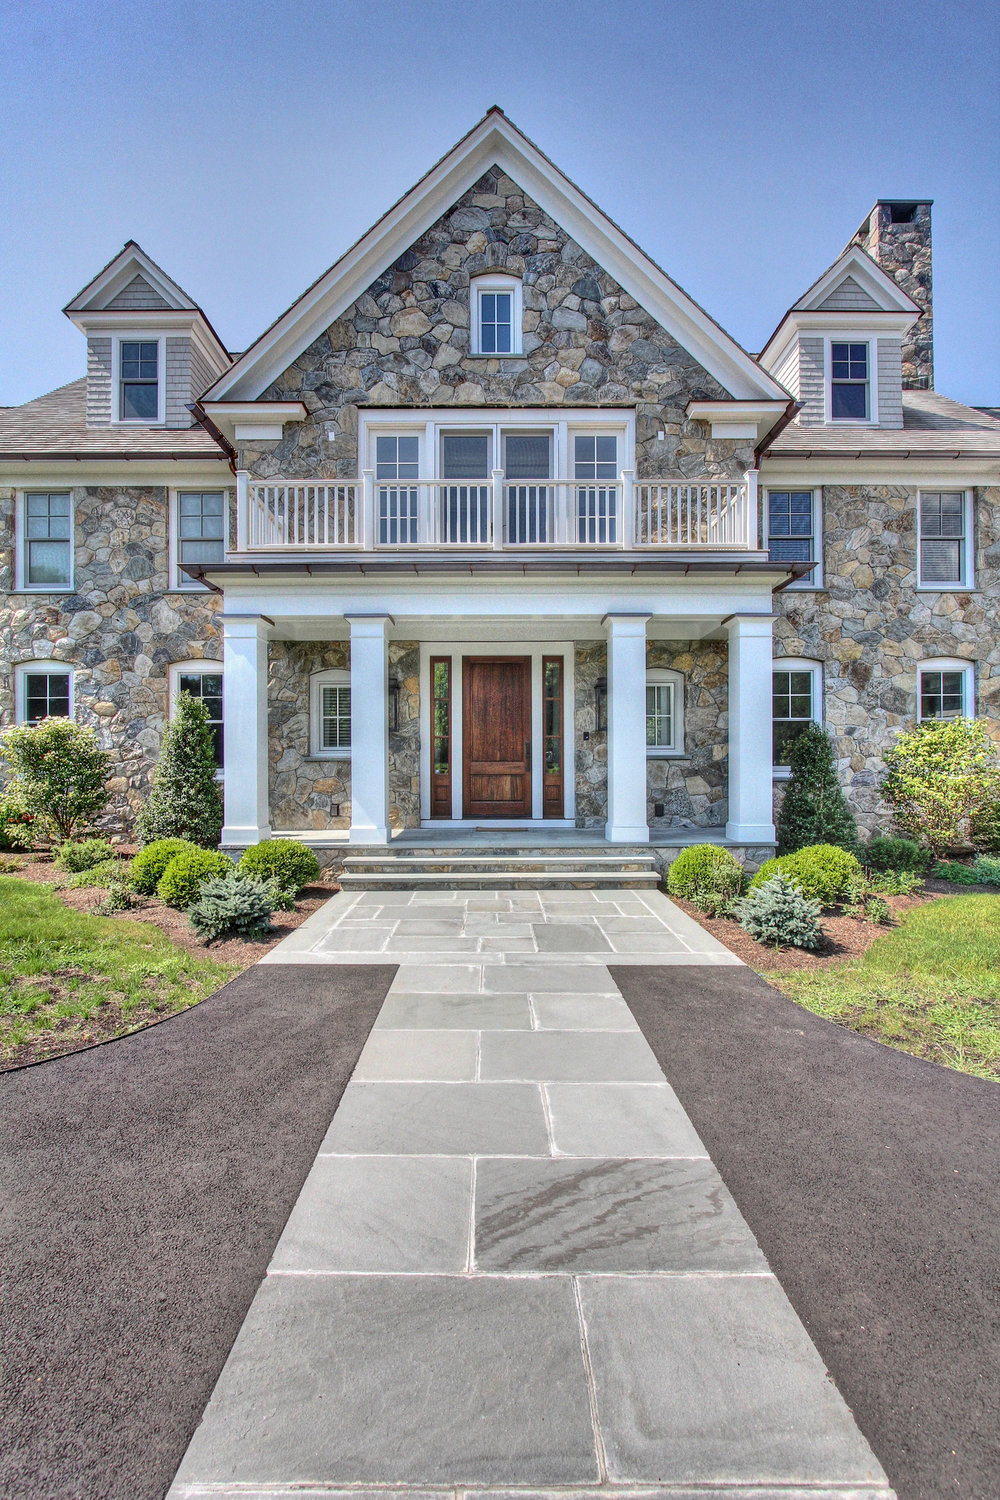 MATERIALS USED: CT FIELDSTONE VENEER; THERMAL BLUESTONE WALKWAY PHOTO CREDIT: TALLMAN SEGERSON BUILDERS